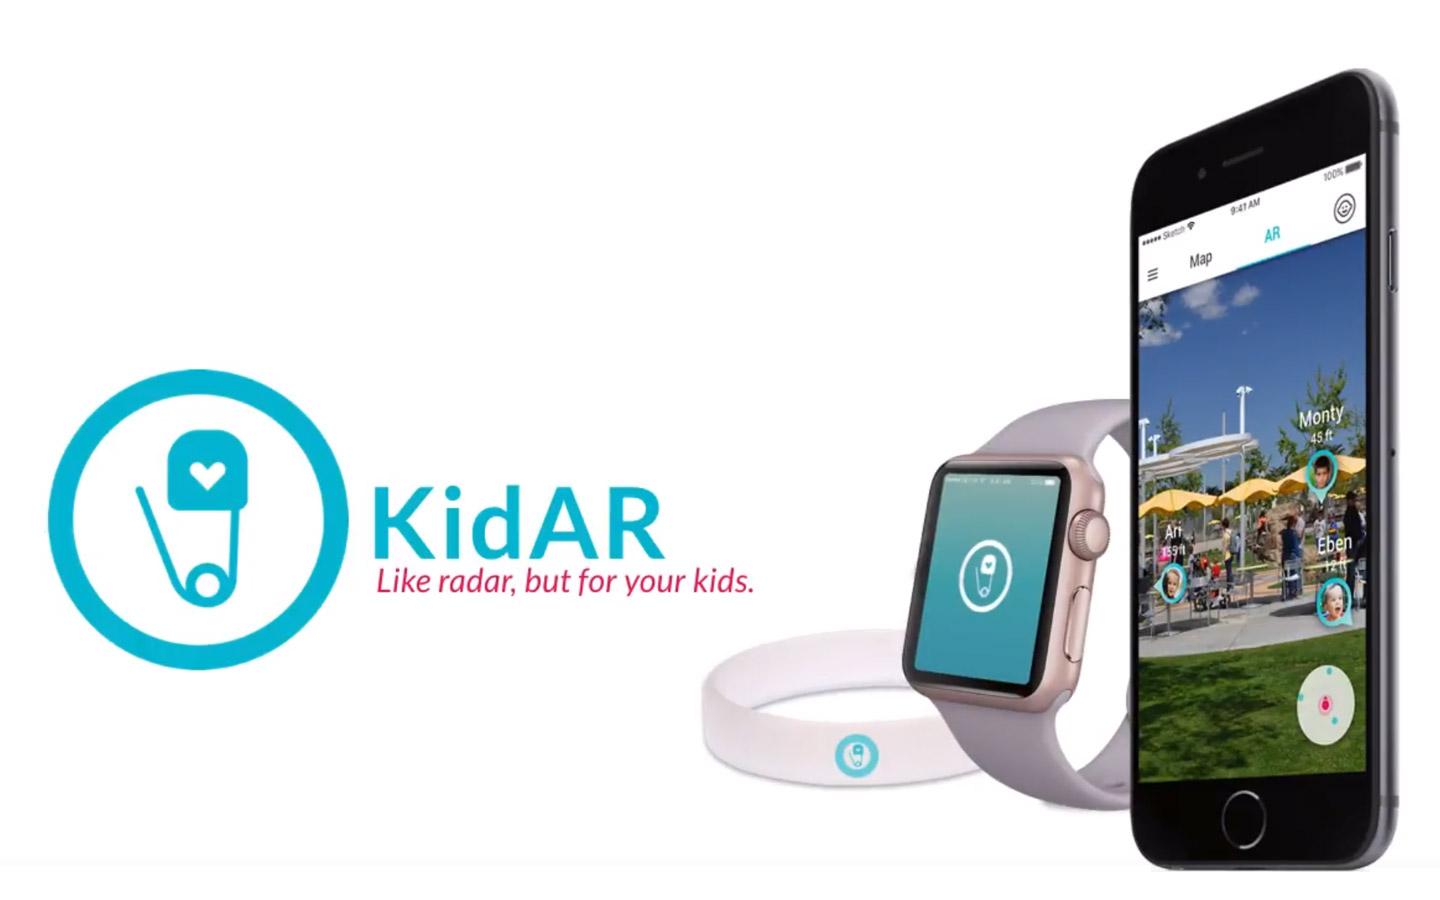 KidAR: Let your kids be free while keeping your mind at ease